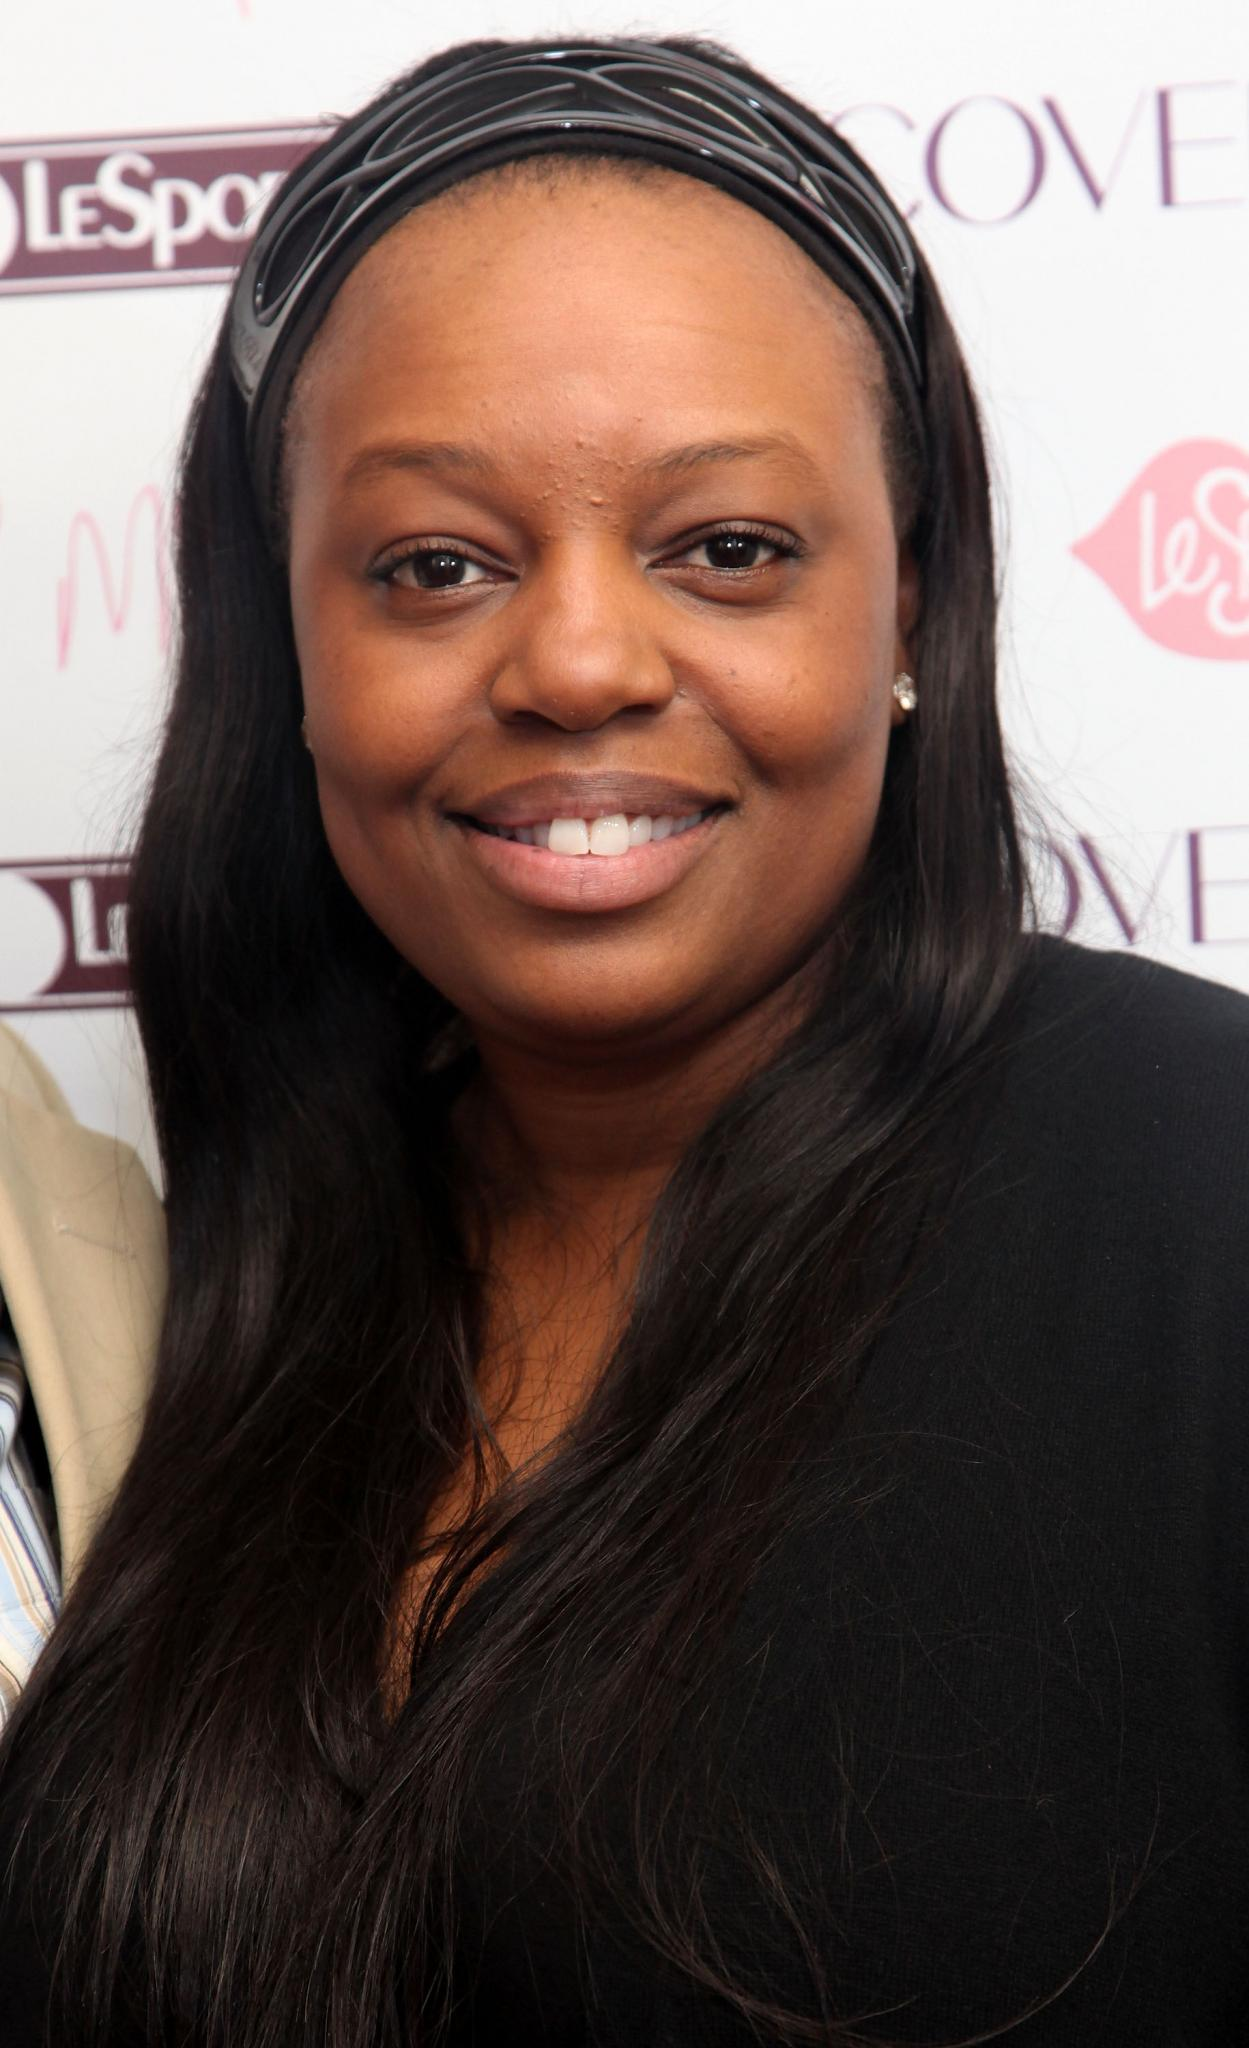 Pat McGrath Honored by The Queen